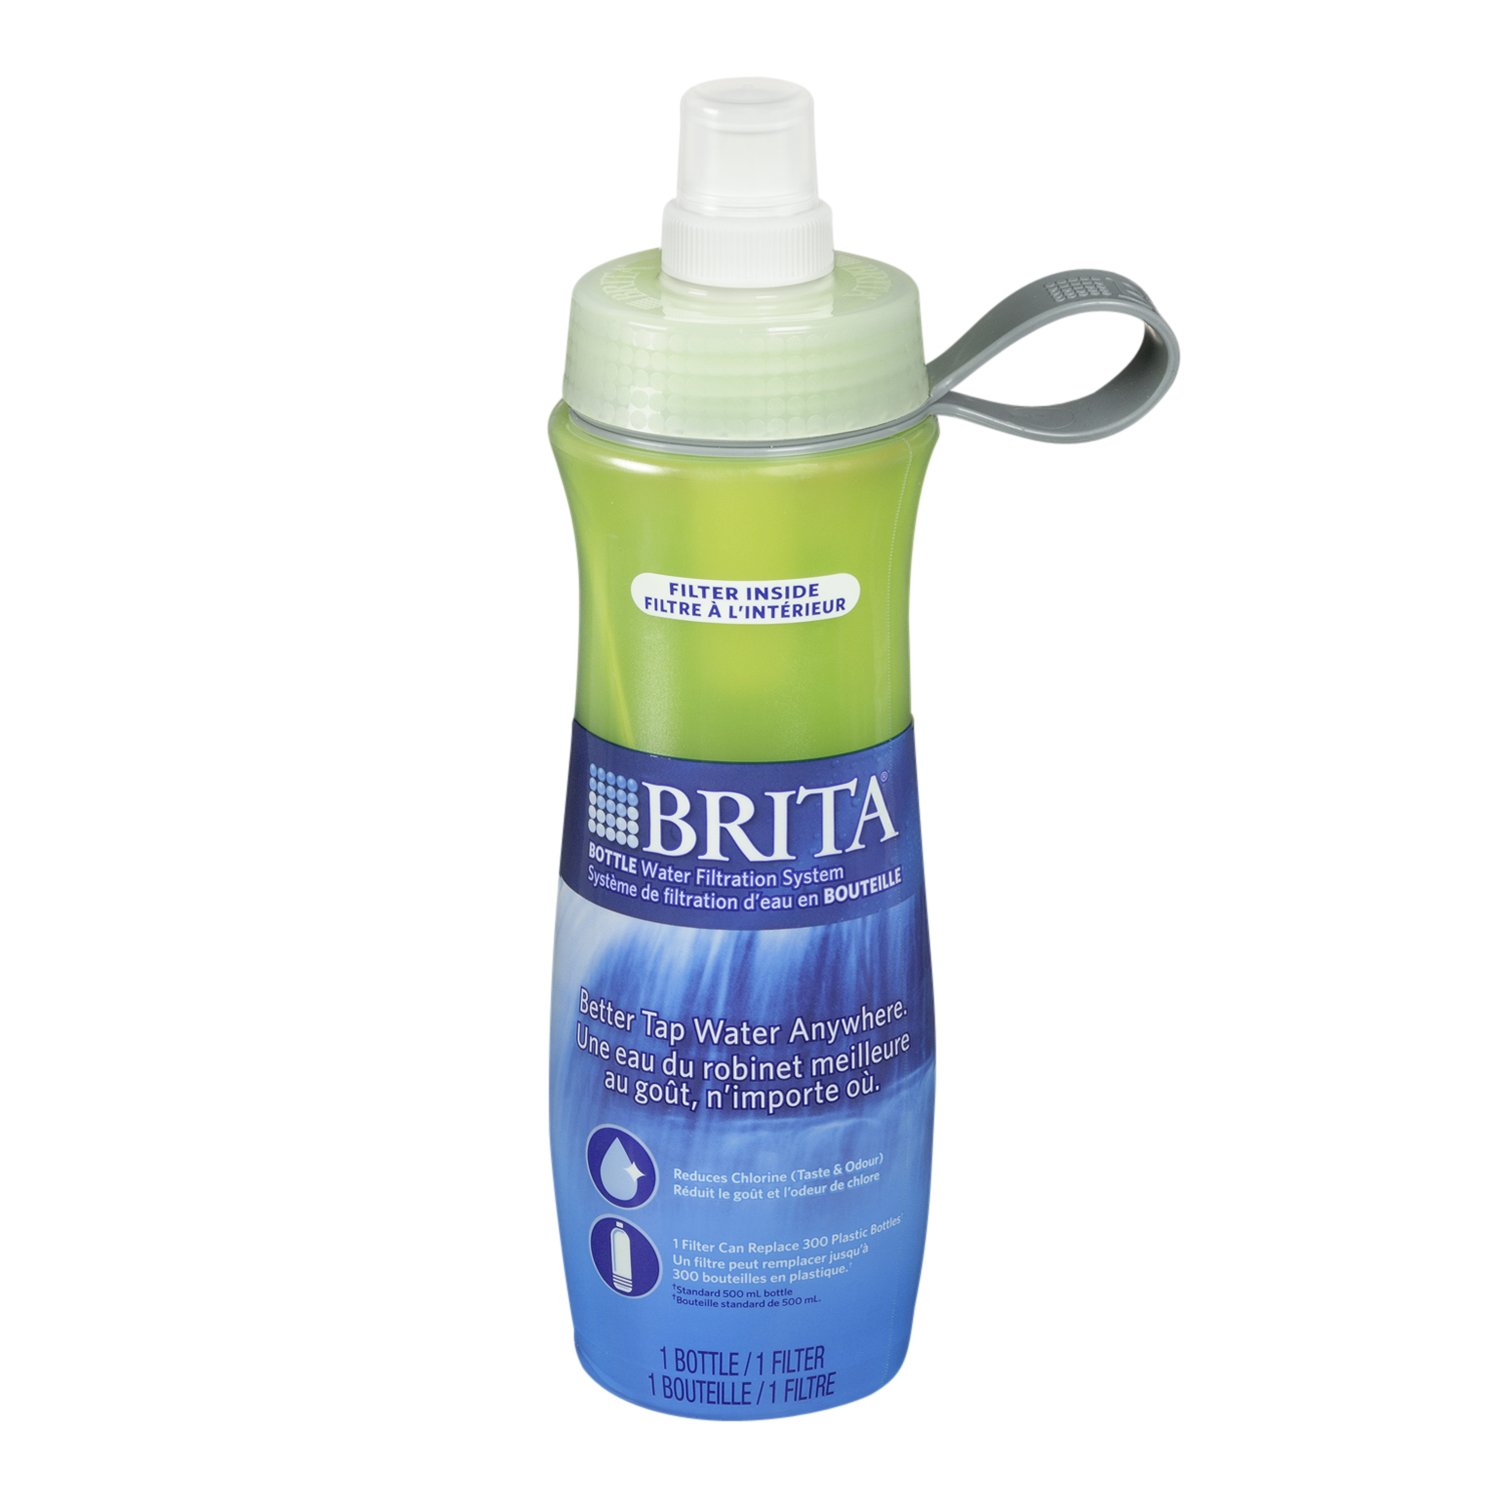 Amazoncom Brita 20 Ounce Water Filter Bottle with 1 Filter Green